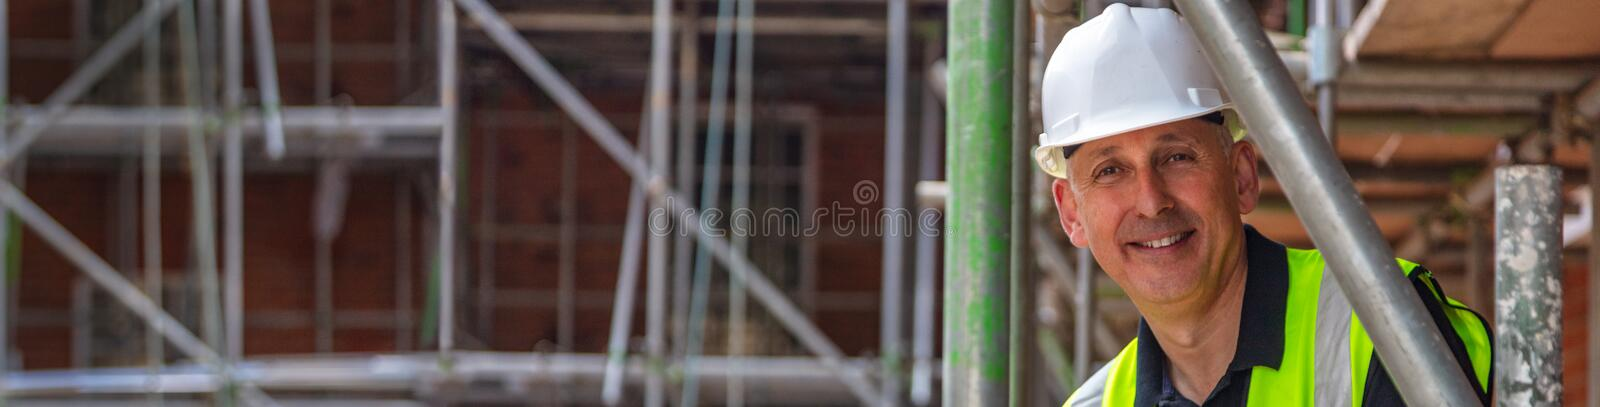 Construction Foreman Builder on Building Site Panorama Web Banner royalty free stock photos